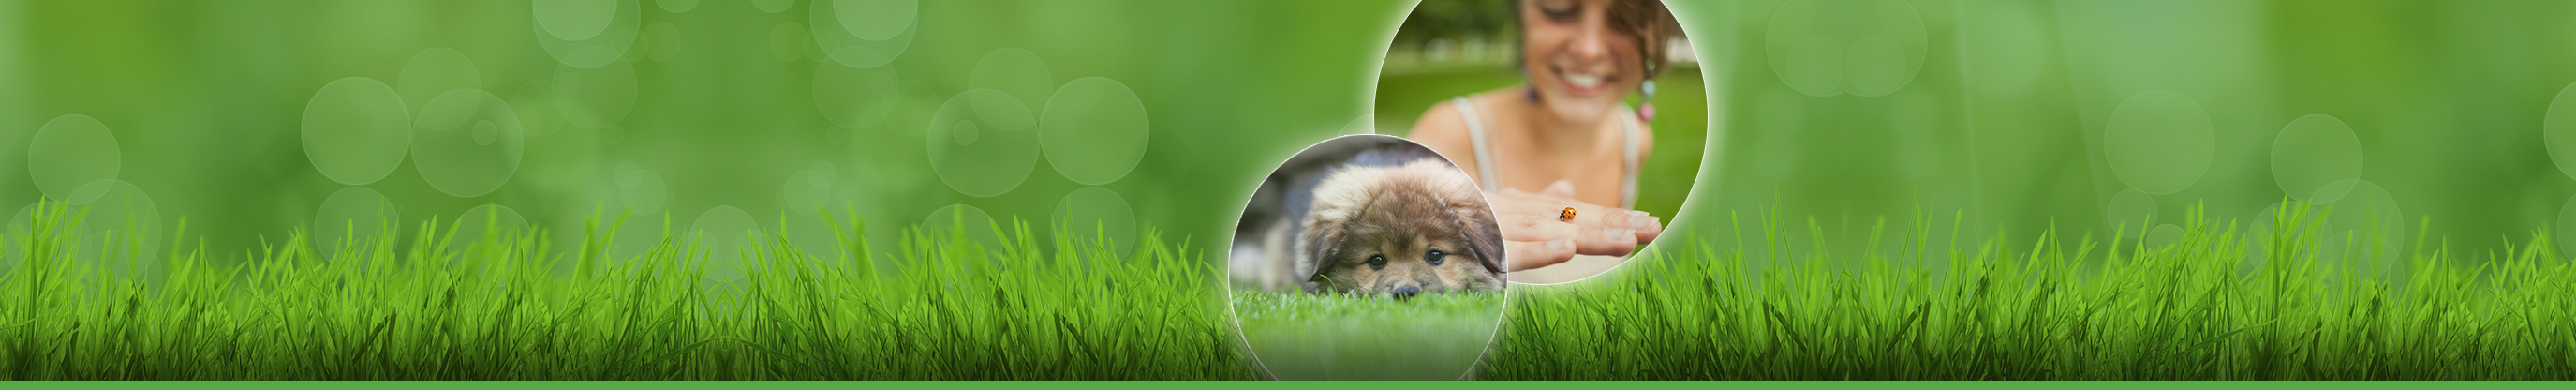 Professional Lawn Care by NJ-Based Landscape Company Whole 9 Yards.